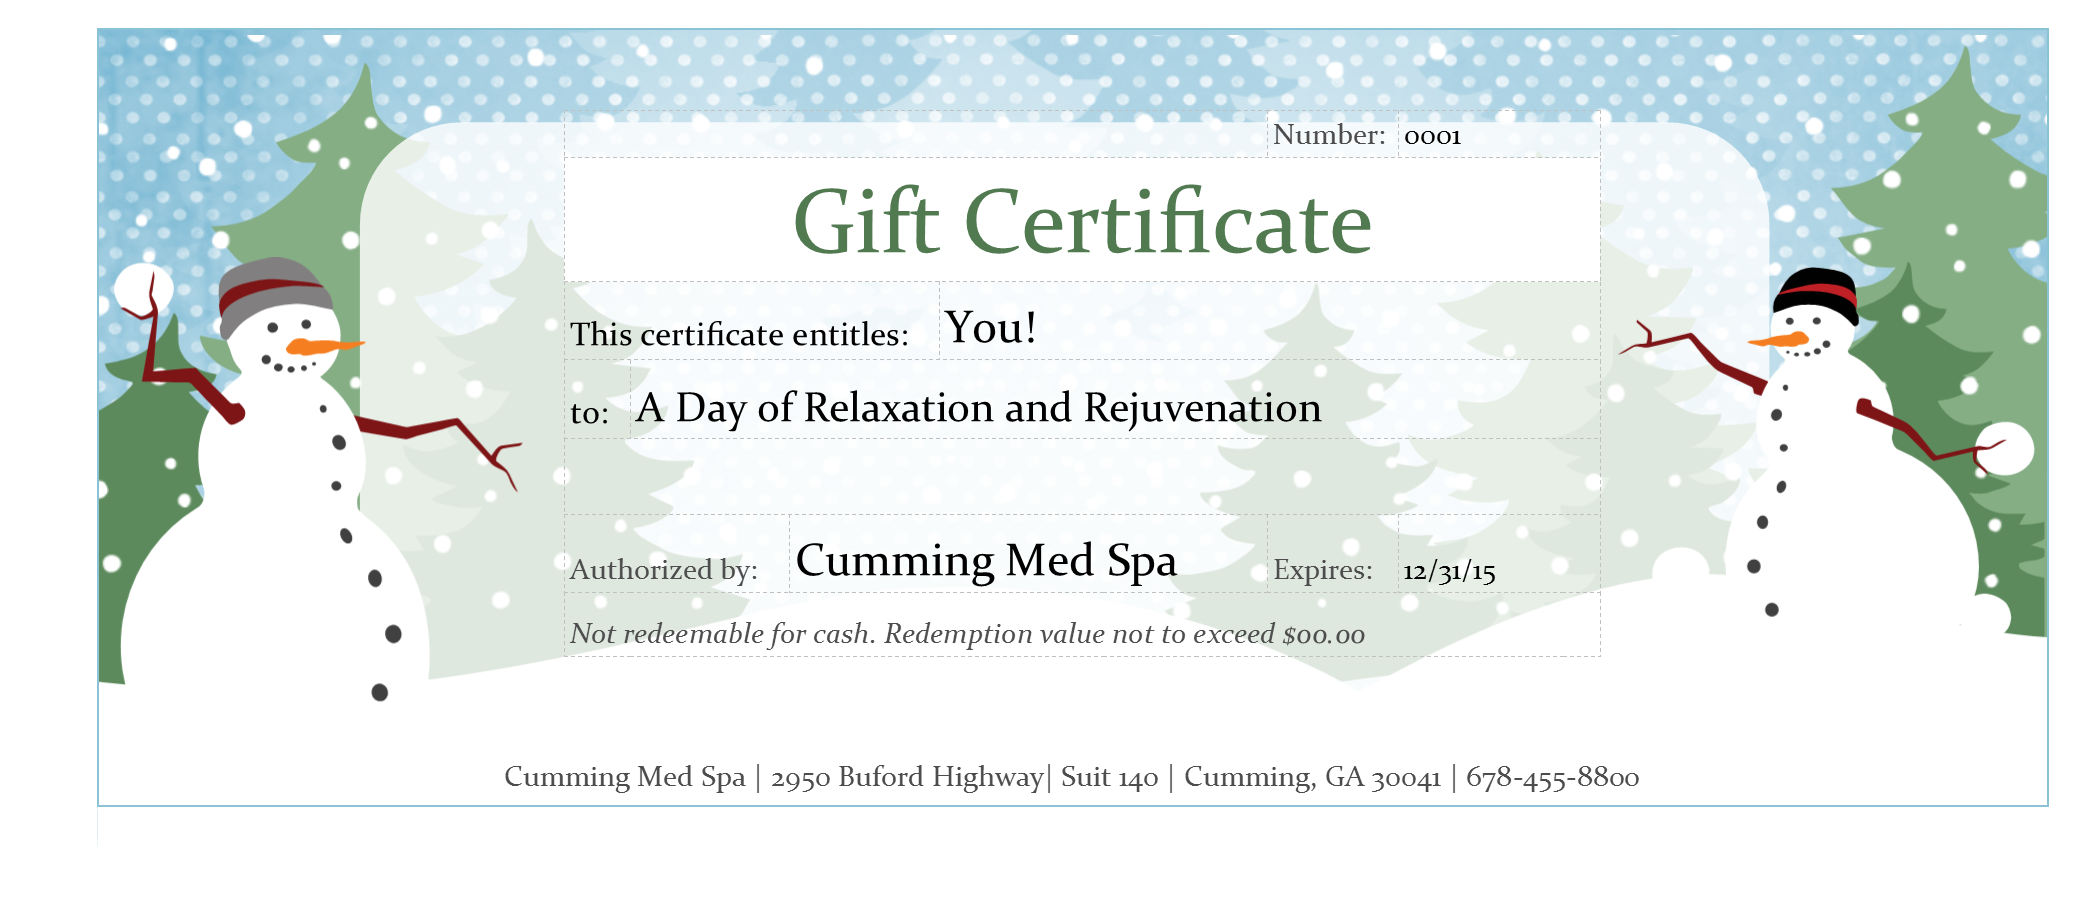 Spa packages gift certificates cumming med spa for This entitles the bearer to template certificate